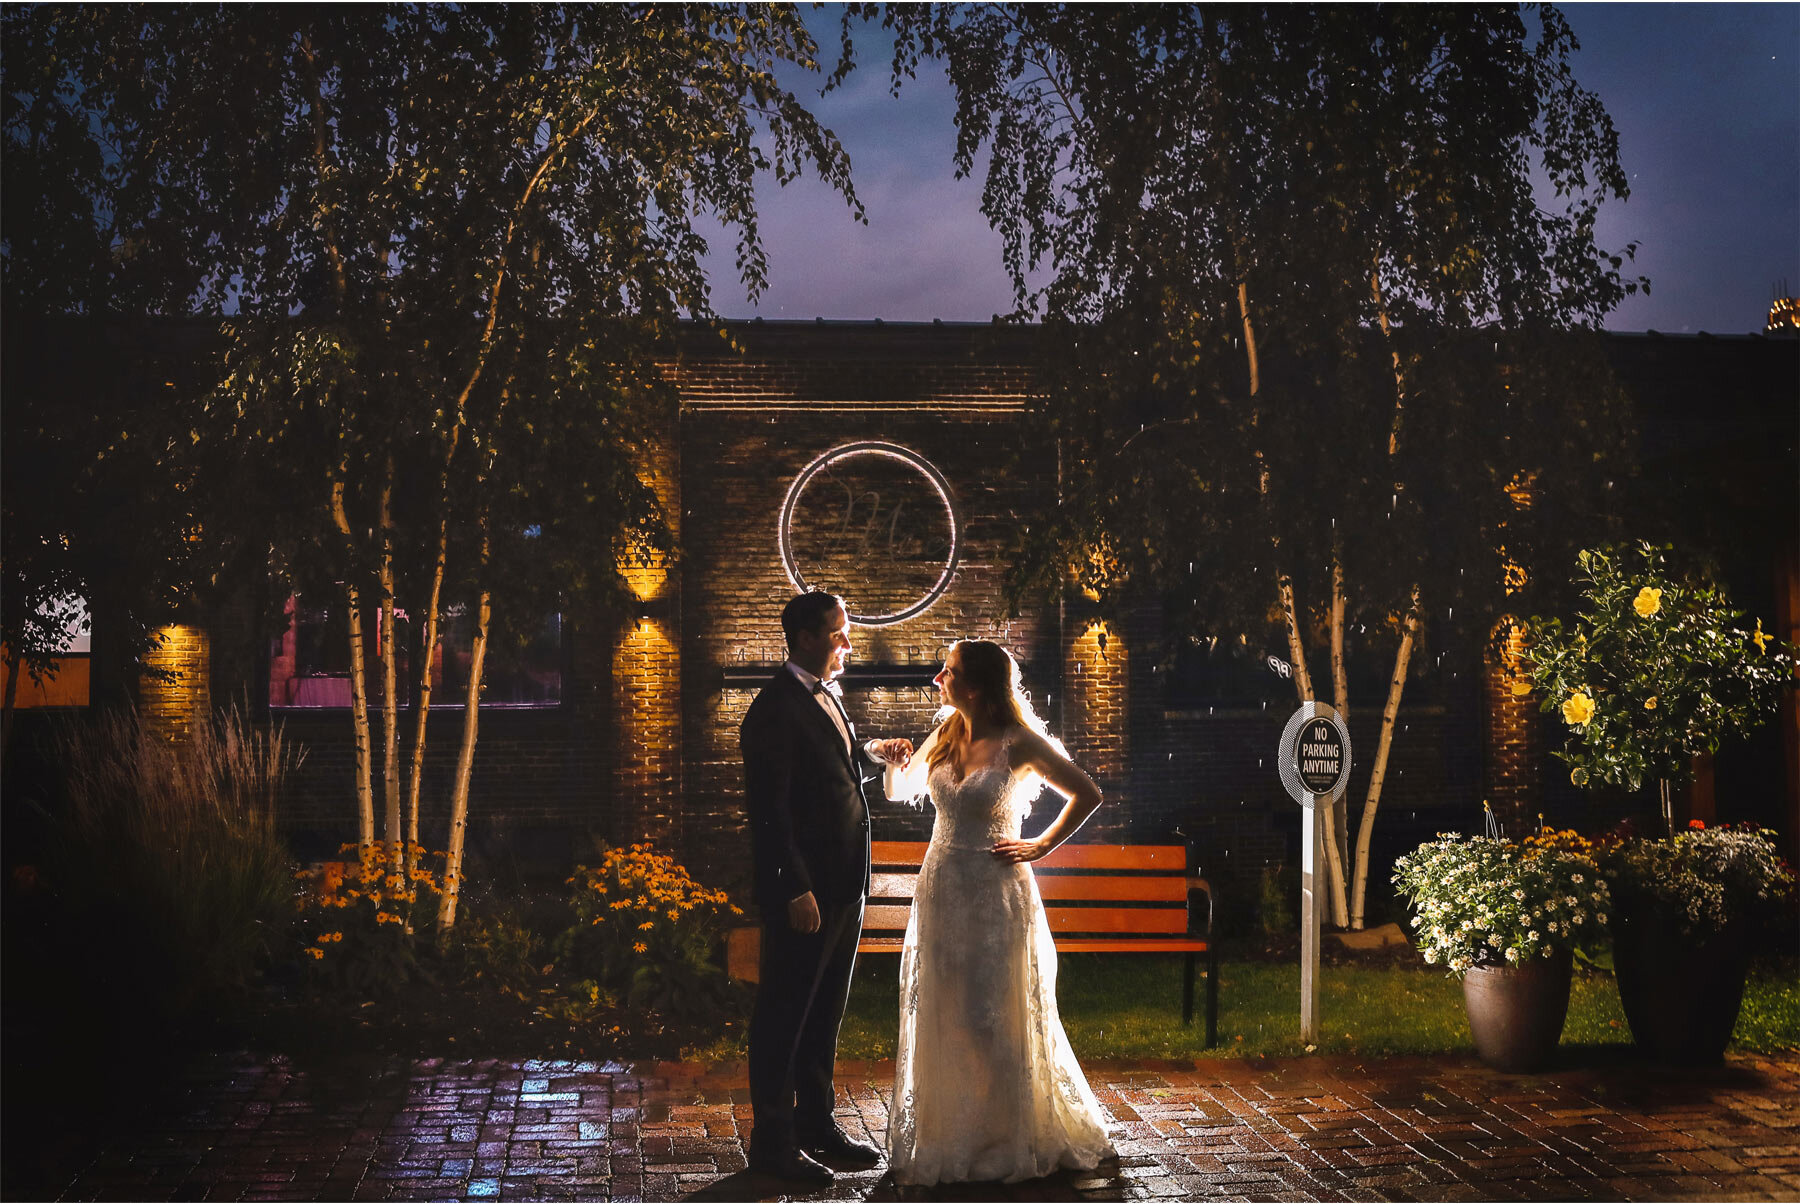 19-Minnesota-Wedding-Vick-Photography-Minneapolis-Event-Centers-Outdoor-Night-Amy-and-Avi.jpg